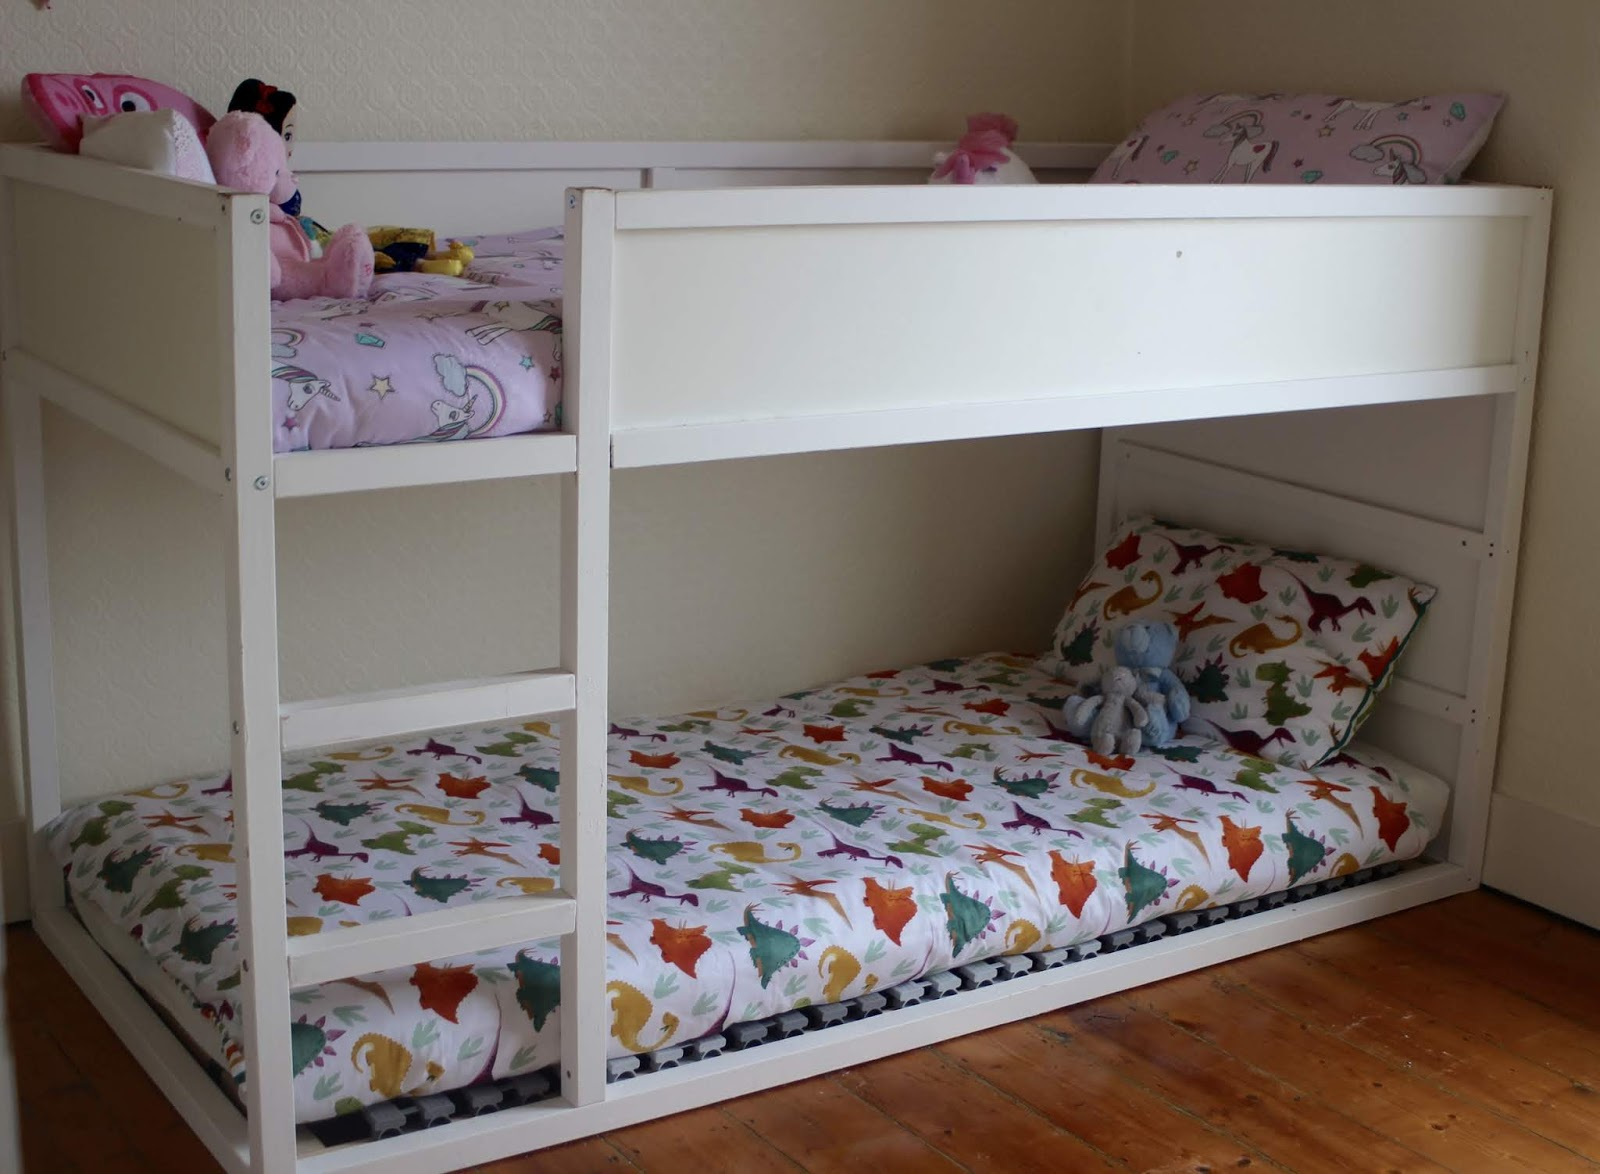 The IKEA Kura bed was slotted onto the